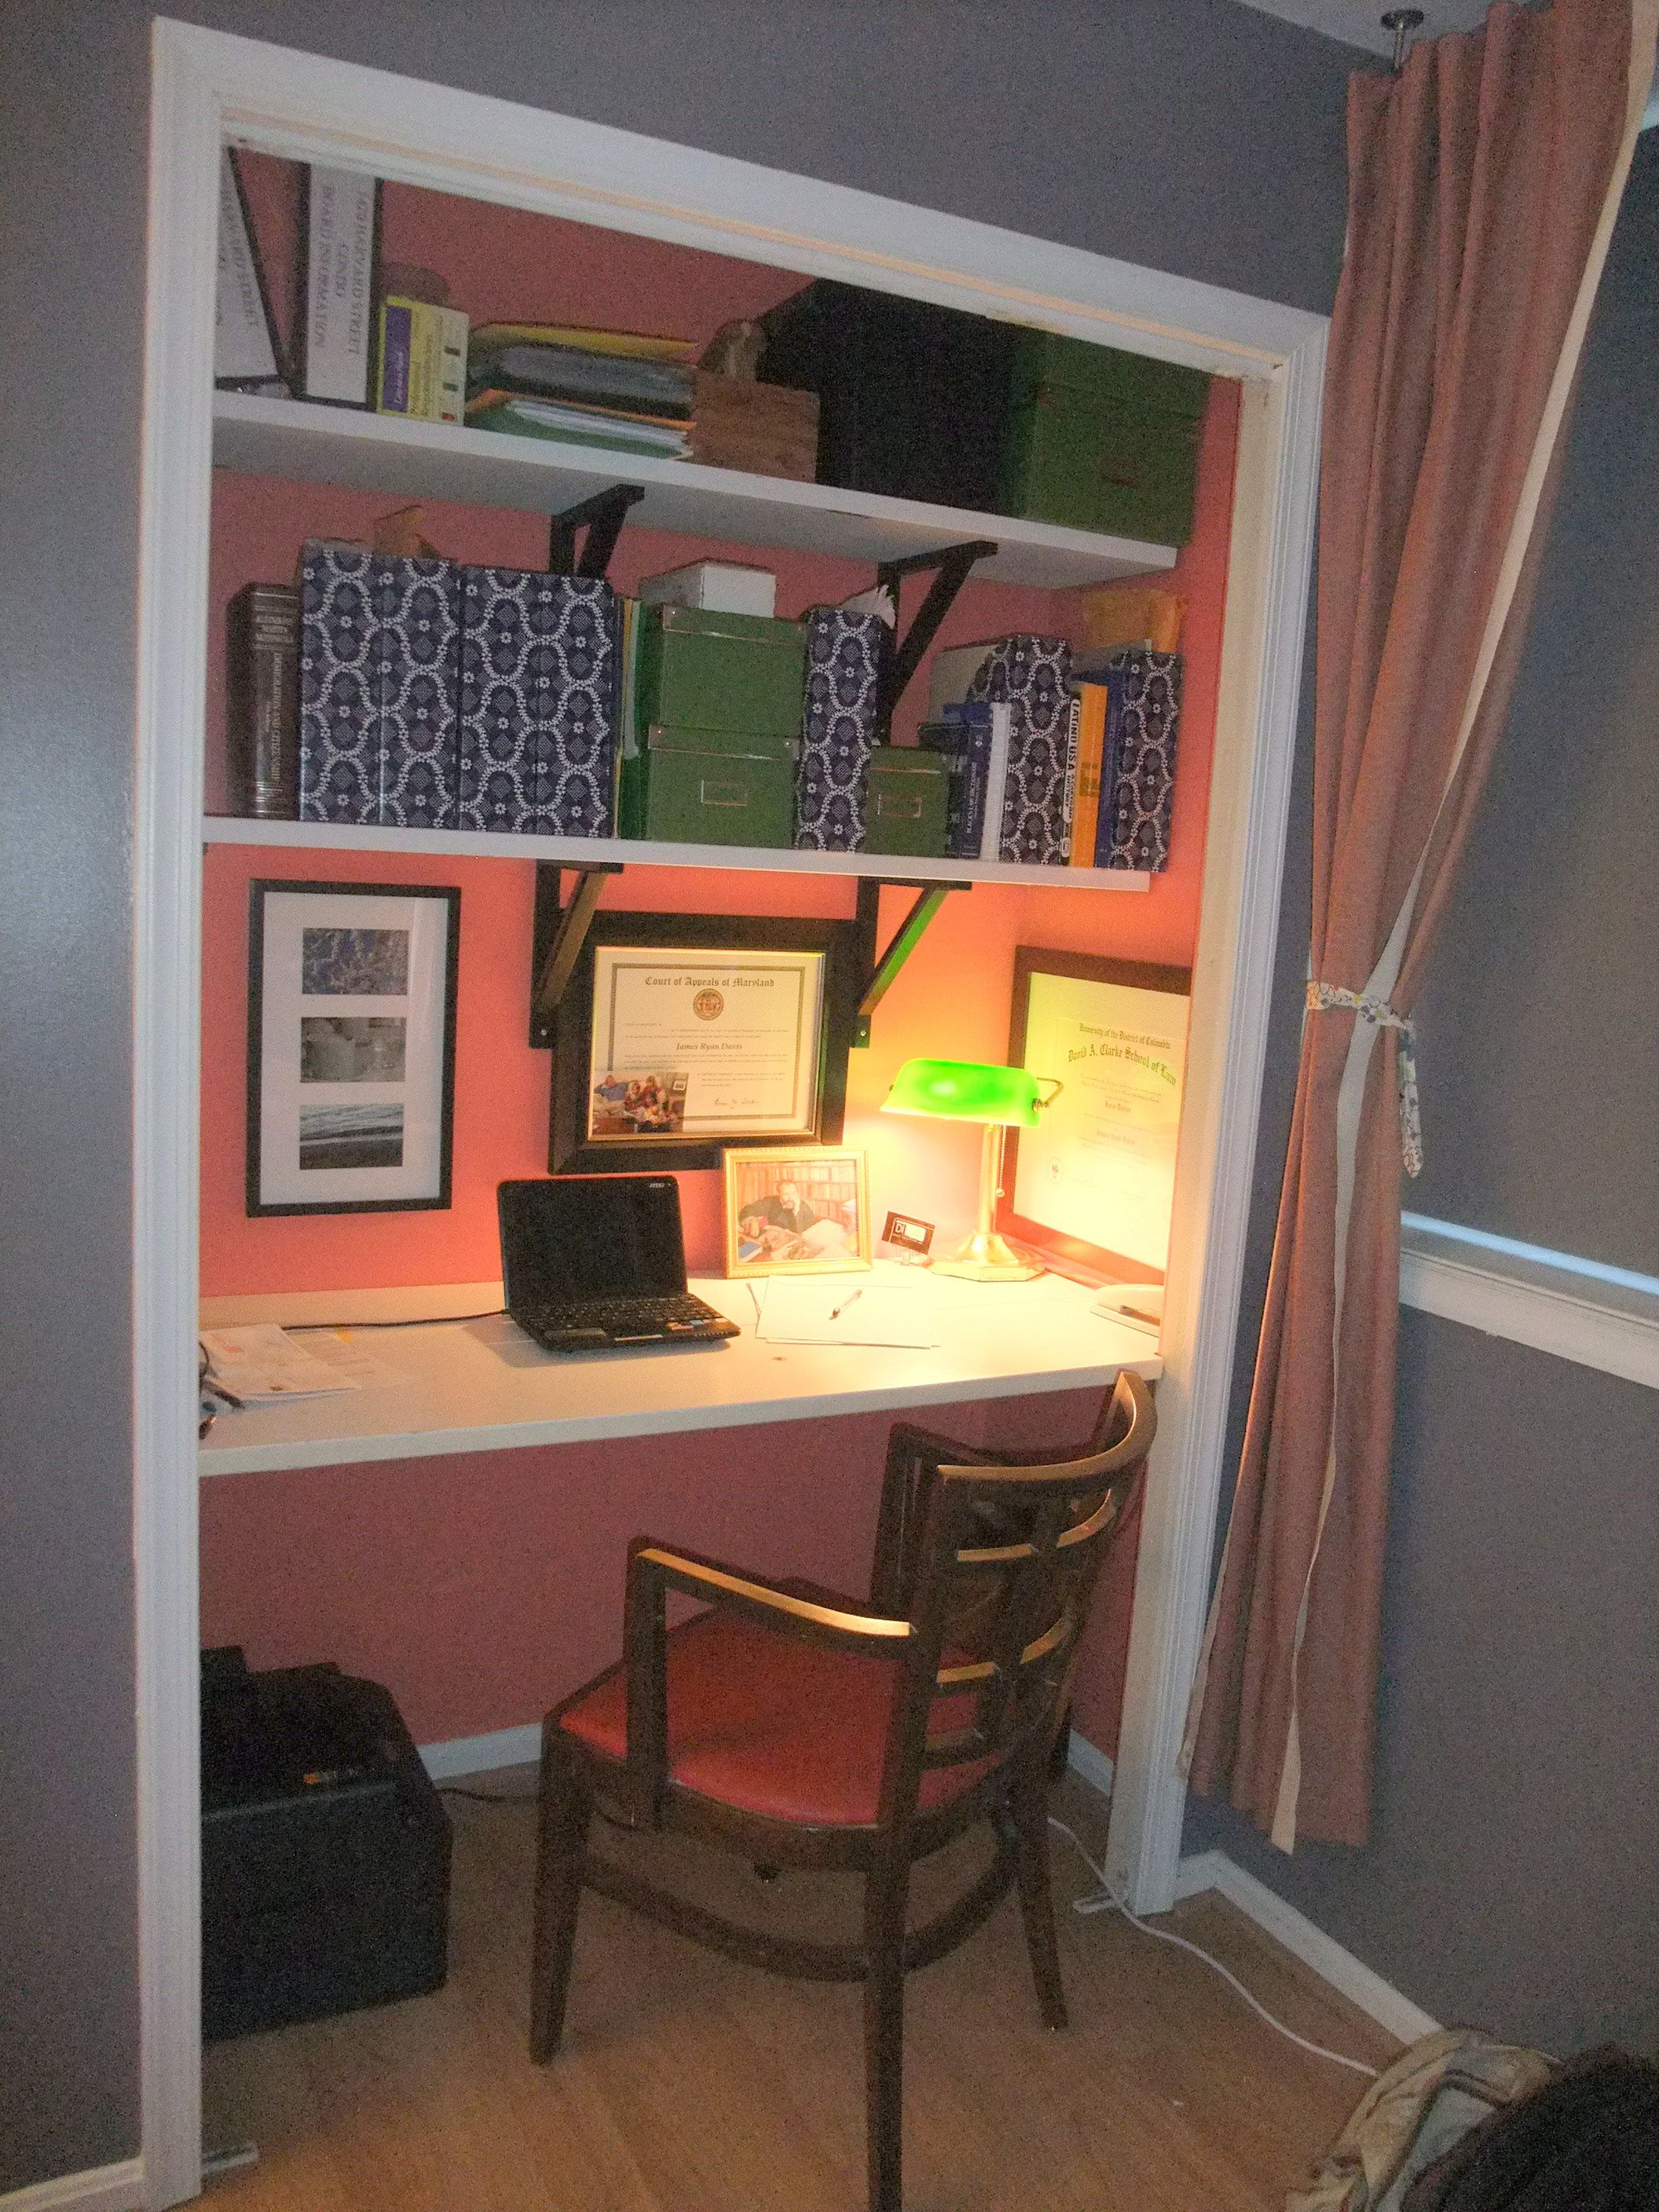 Closet To Office Conversion The Book Of Jimmy Dual Purpose Room Guest Room Office Home